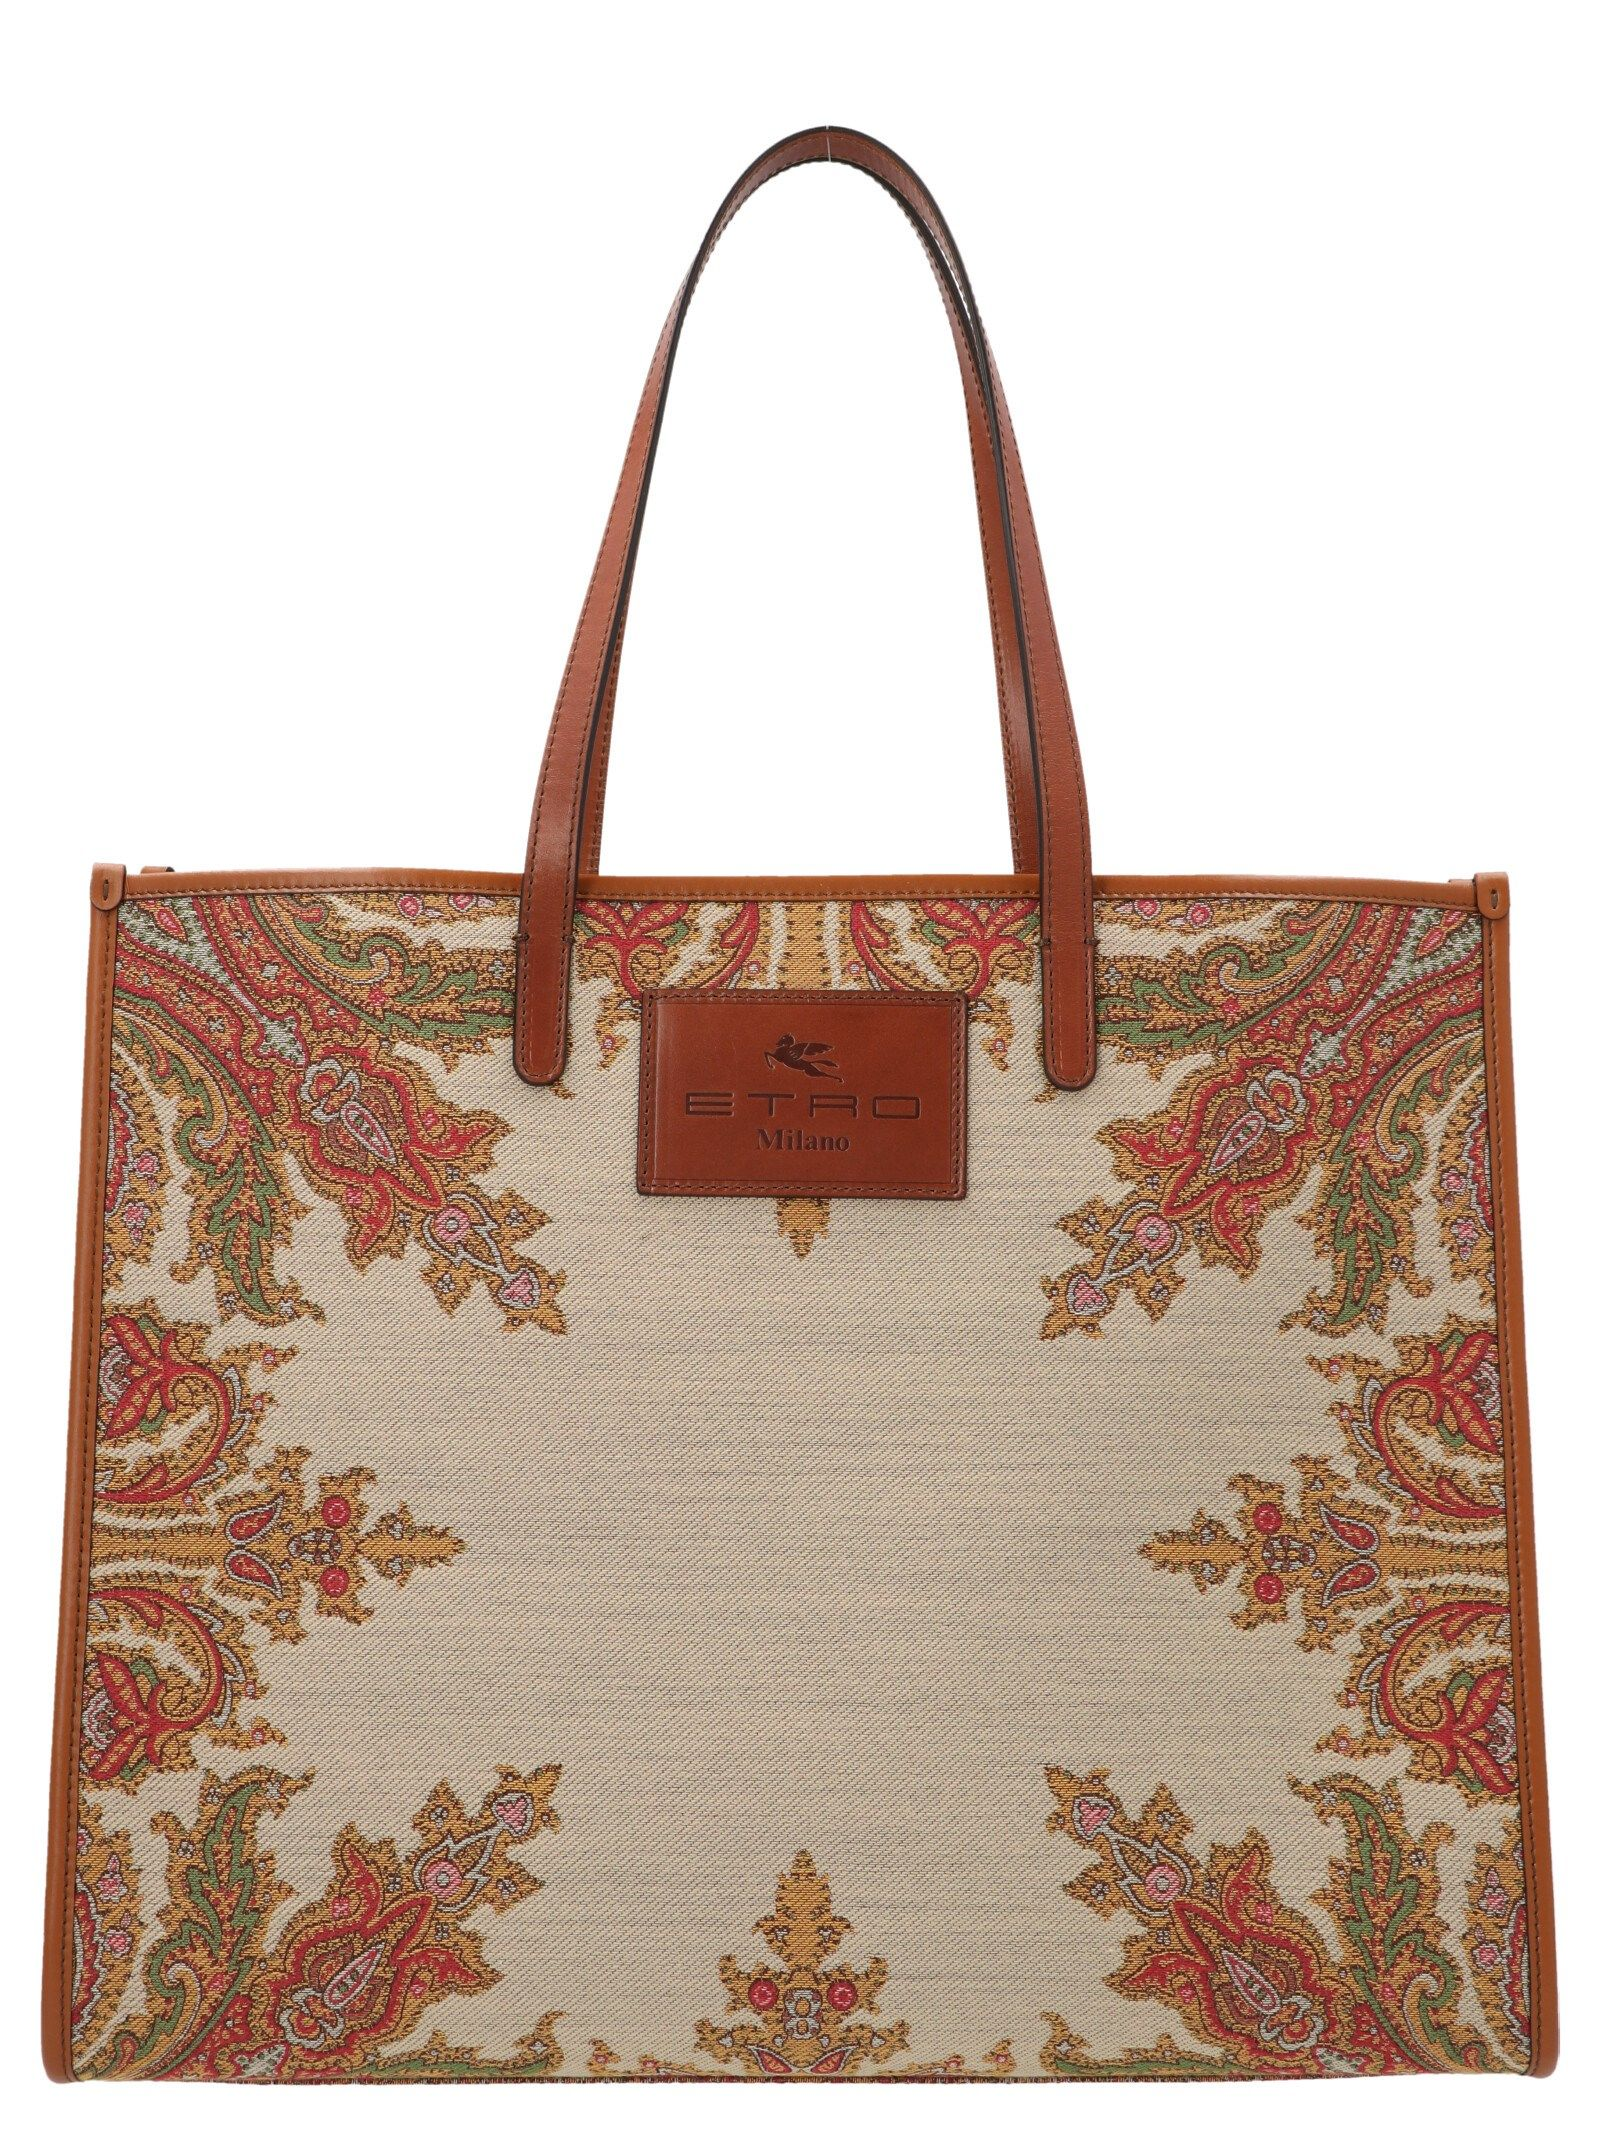 Etro ETRO WOMEN'S 1N00988600800 MULTICOLOR OTHER MATERIALS TOTE